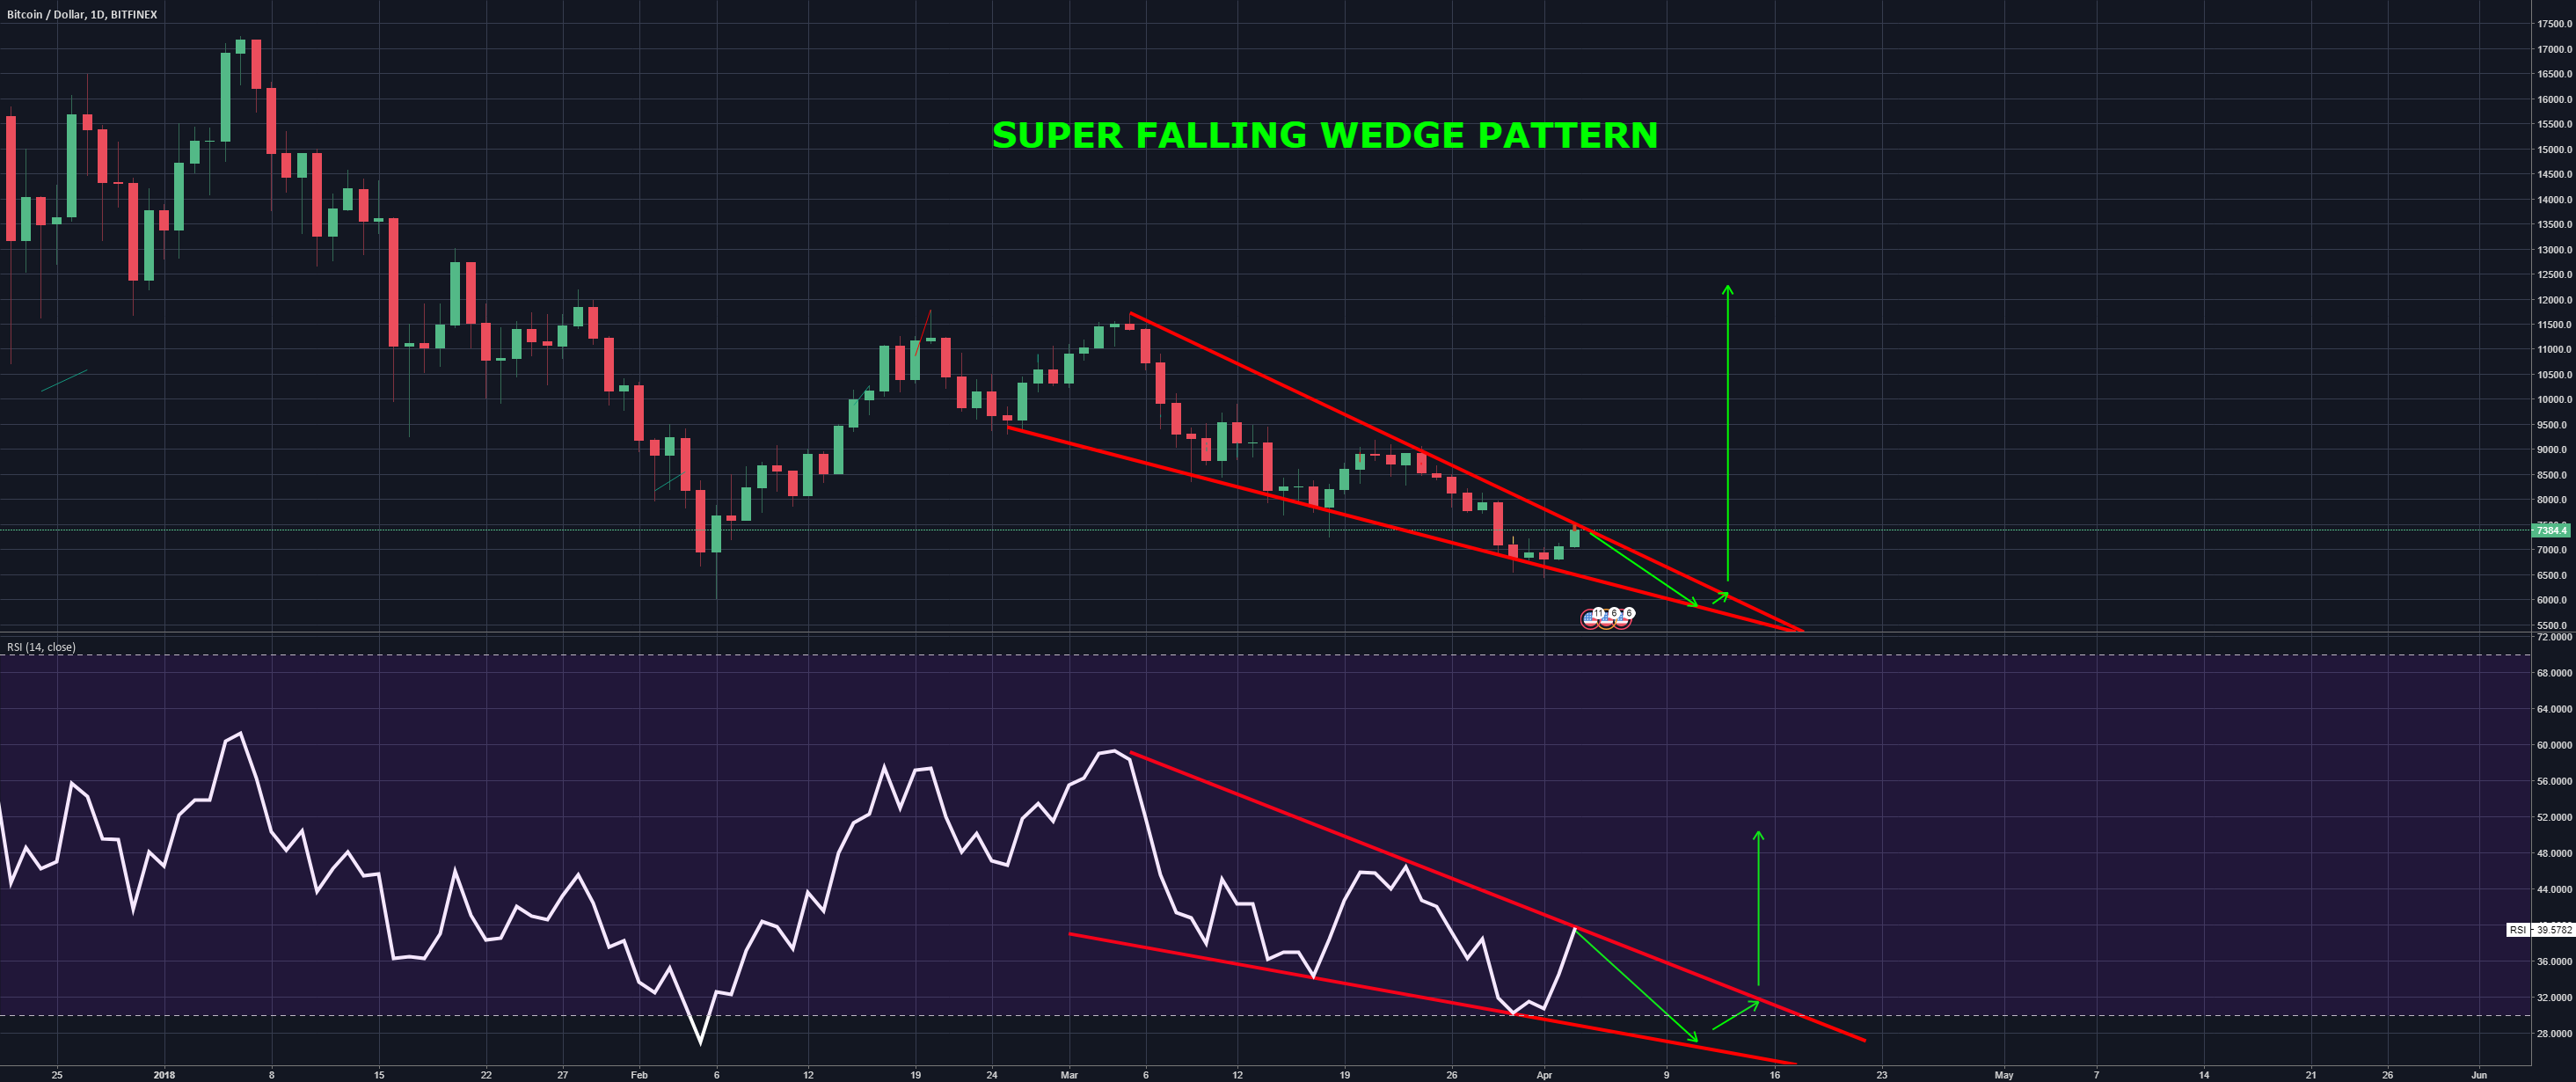 Super Falling Wedge is forming, possible mega reversal inbound.